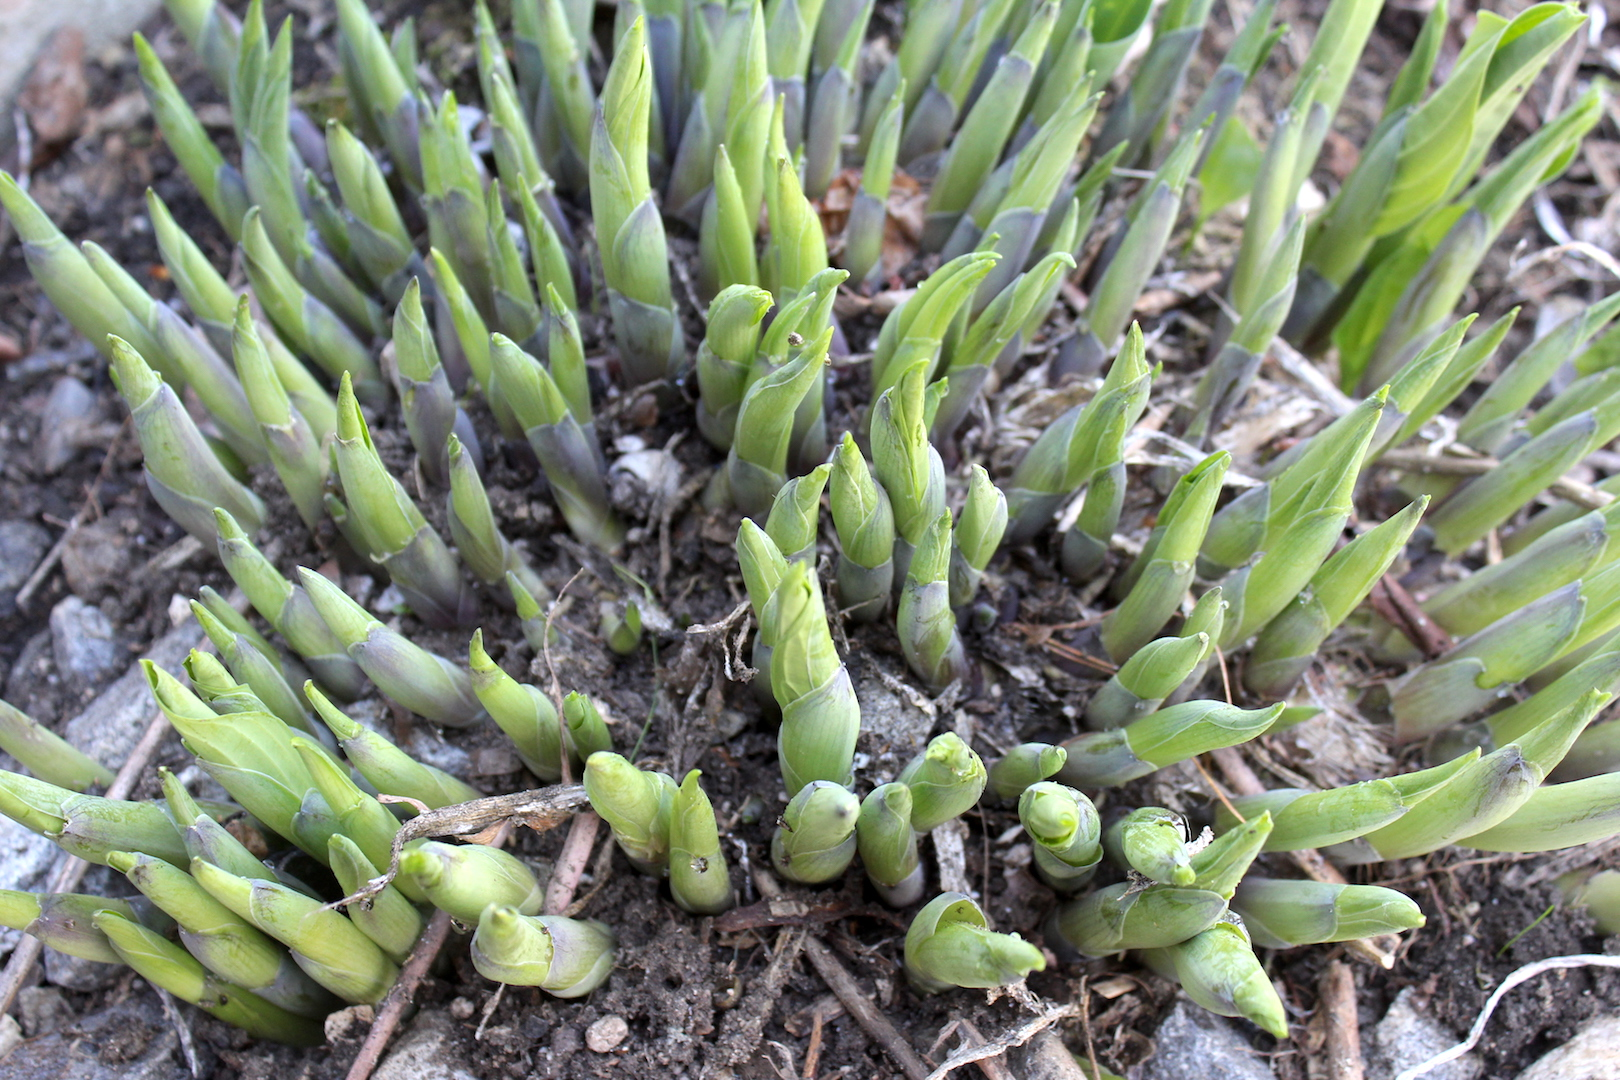 Hosta Shoots in Spring